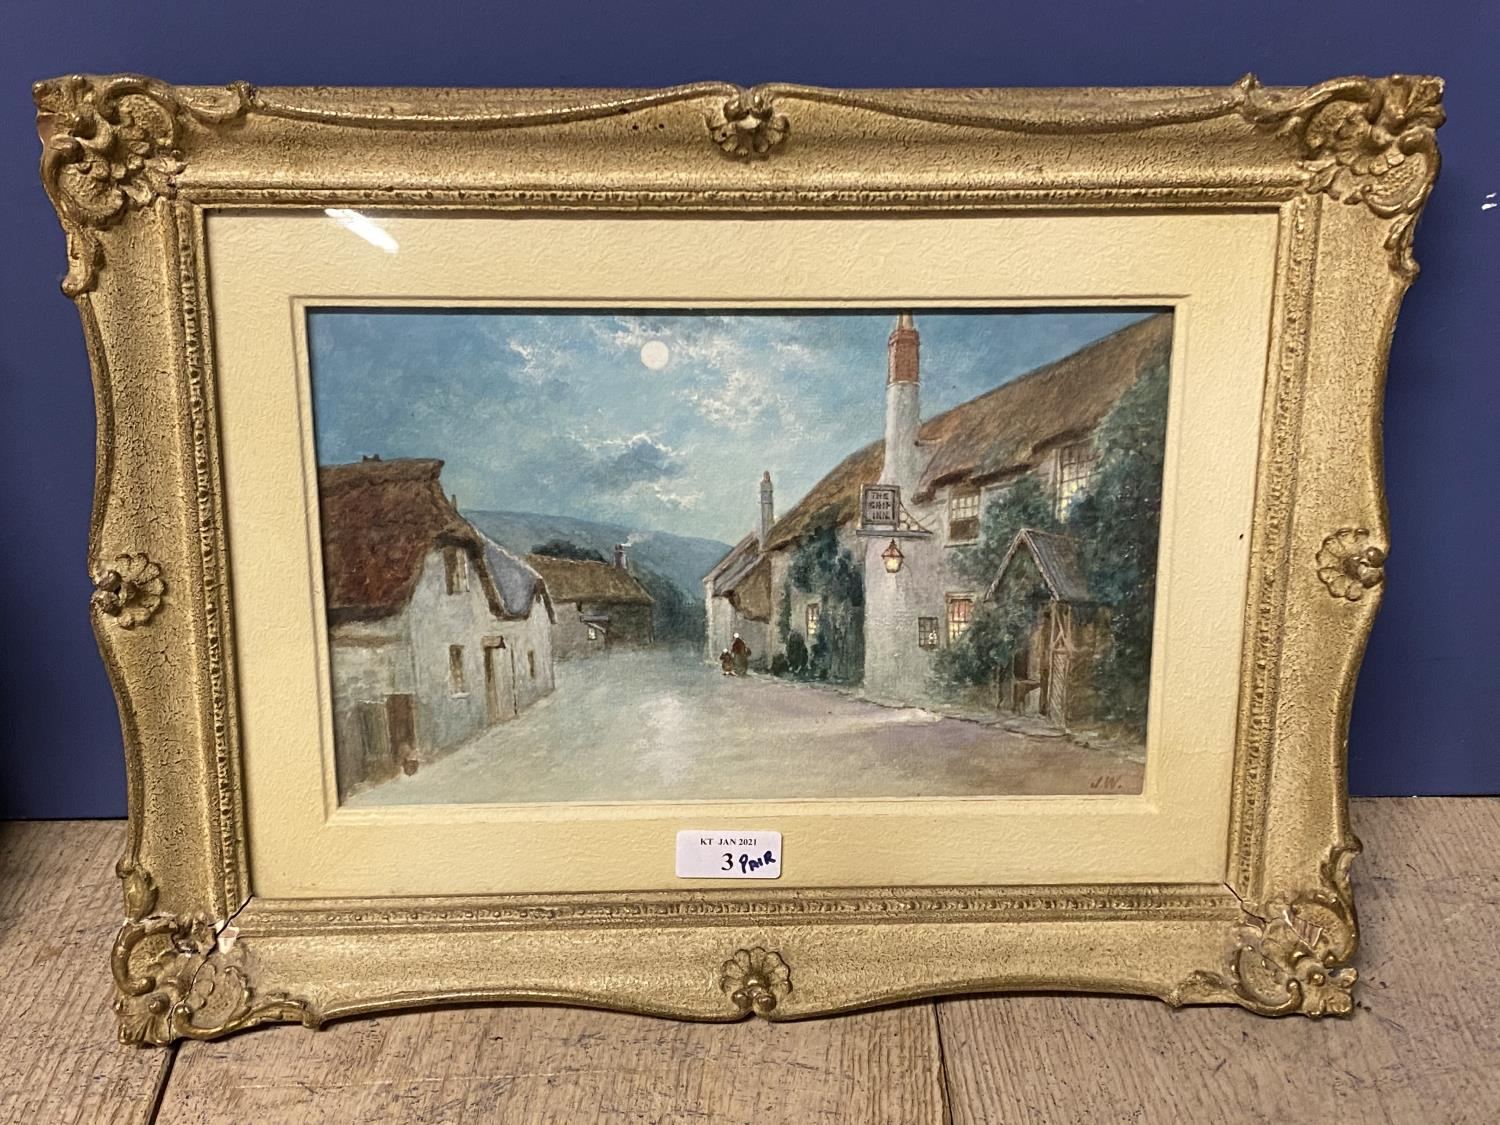 Pair of C19th watercolours, label verso, Cheddar Village and Porlock Village by Moonlight, J Wilson, - Image 3 of 7